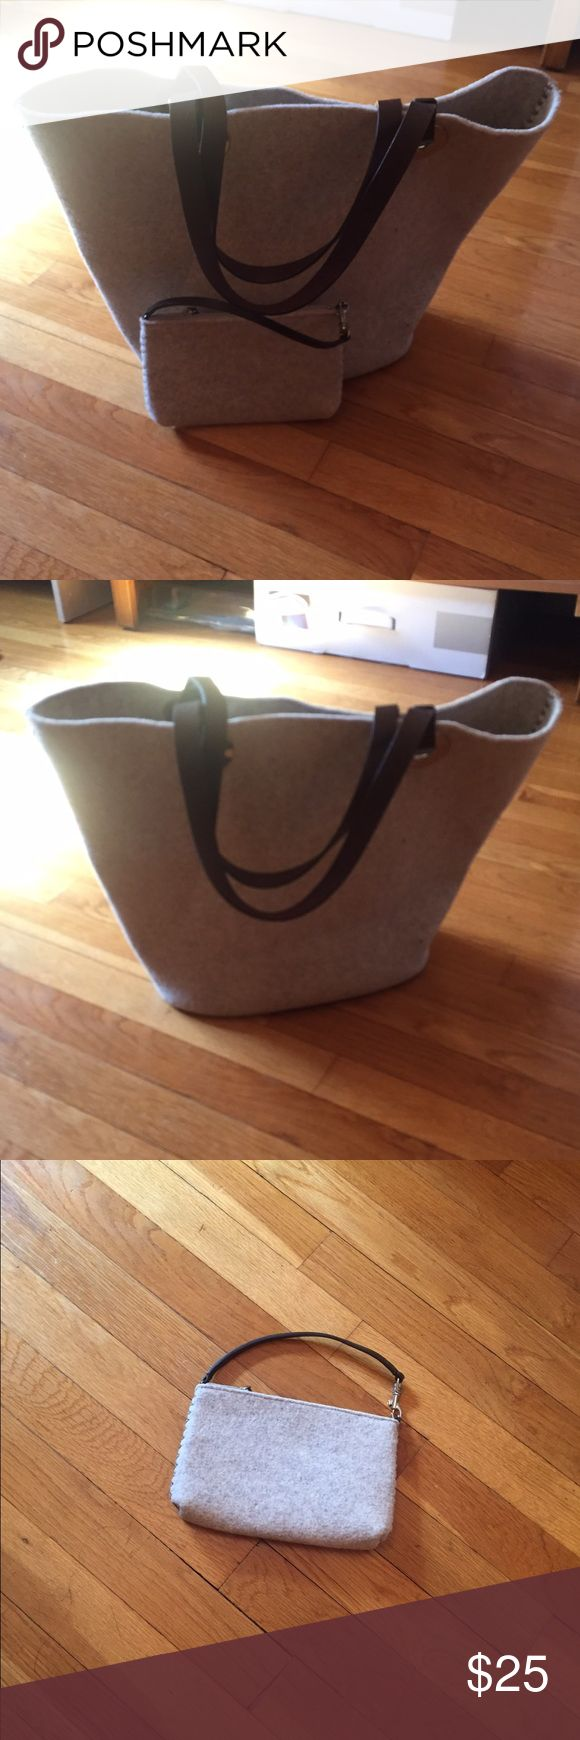 Large tote Bag with small tote inside Wool fabric in a light oatmeal color with chocolate brown leather handles. In brand new condition. Maybe used twice Banana Republic Bags Totes